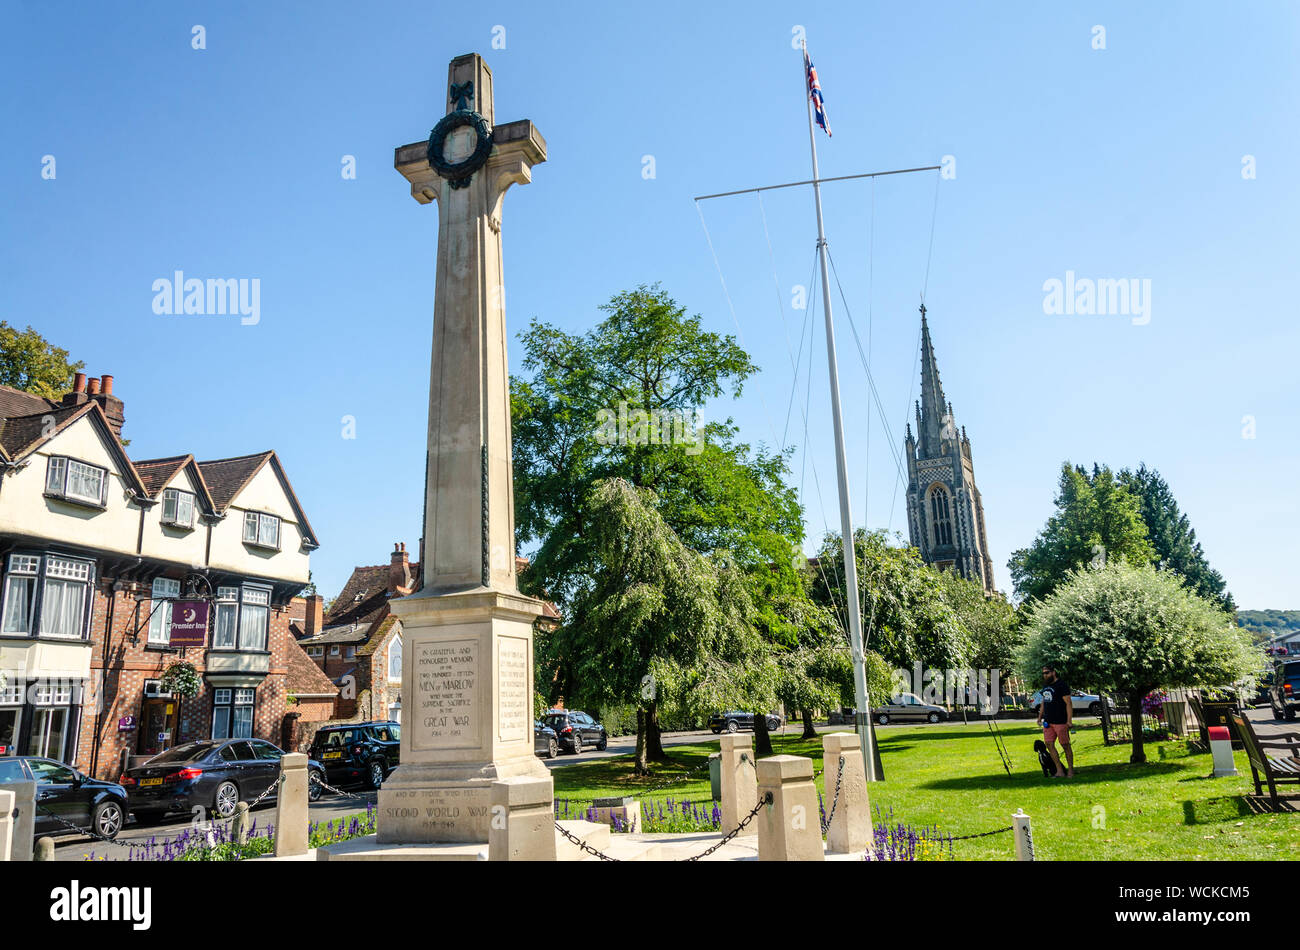 A war memorial in the form of a large stone cross at the bottom end of The High Street in Marlow, Buckinghamshire, UK Stock Photo